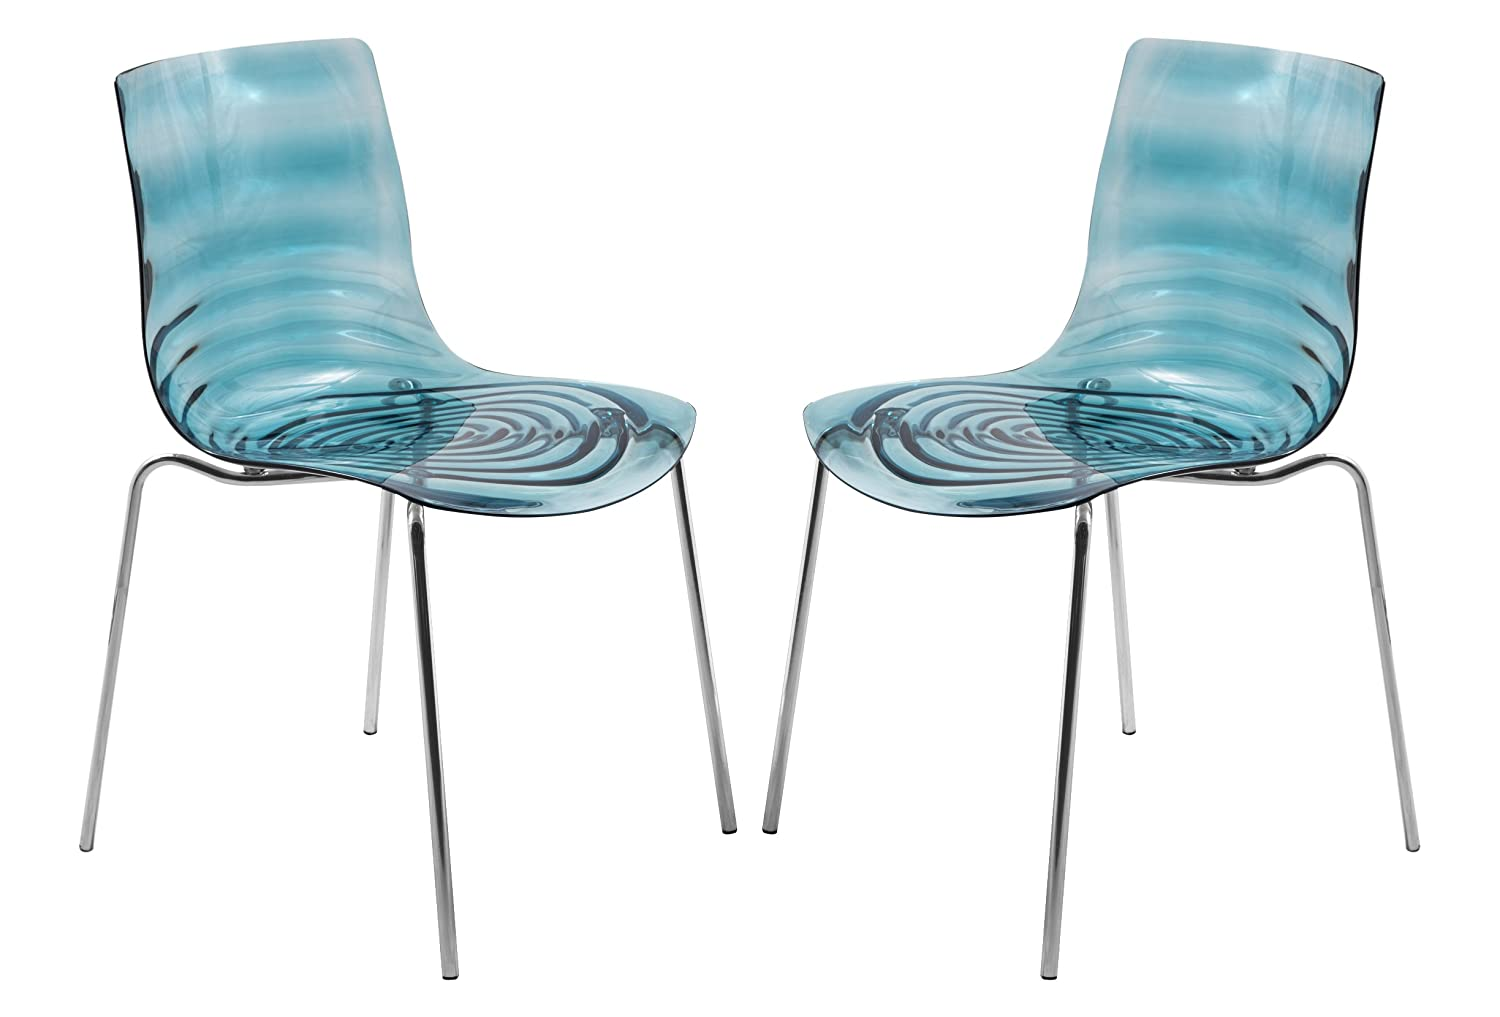 LeisureMod Water Ripple Design Modern Lucite Dining Side Chair with Metal Legs Set of 2 Blue